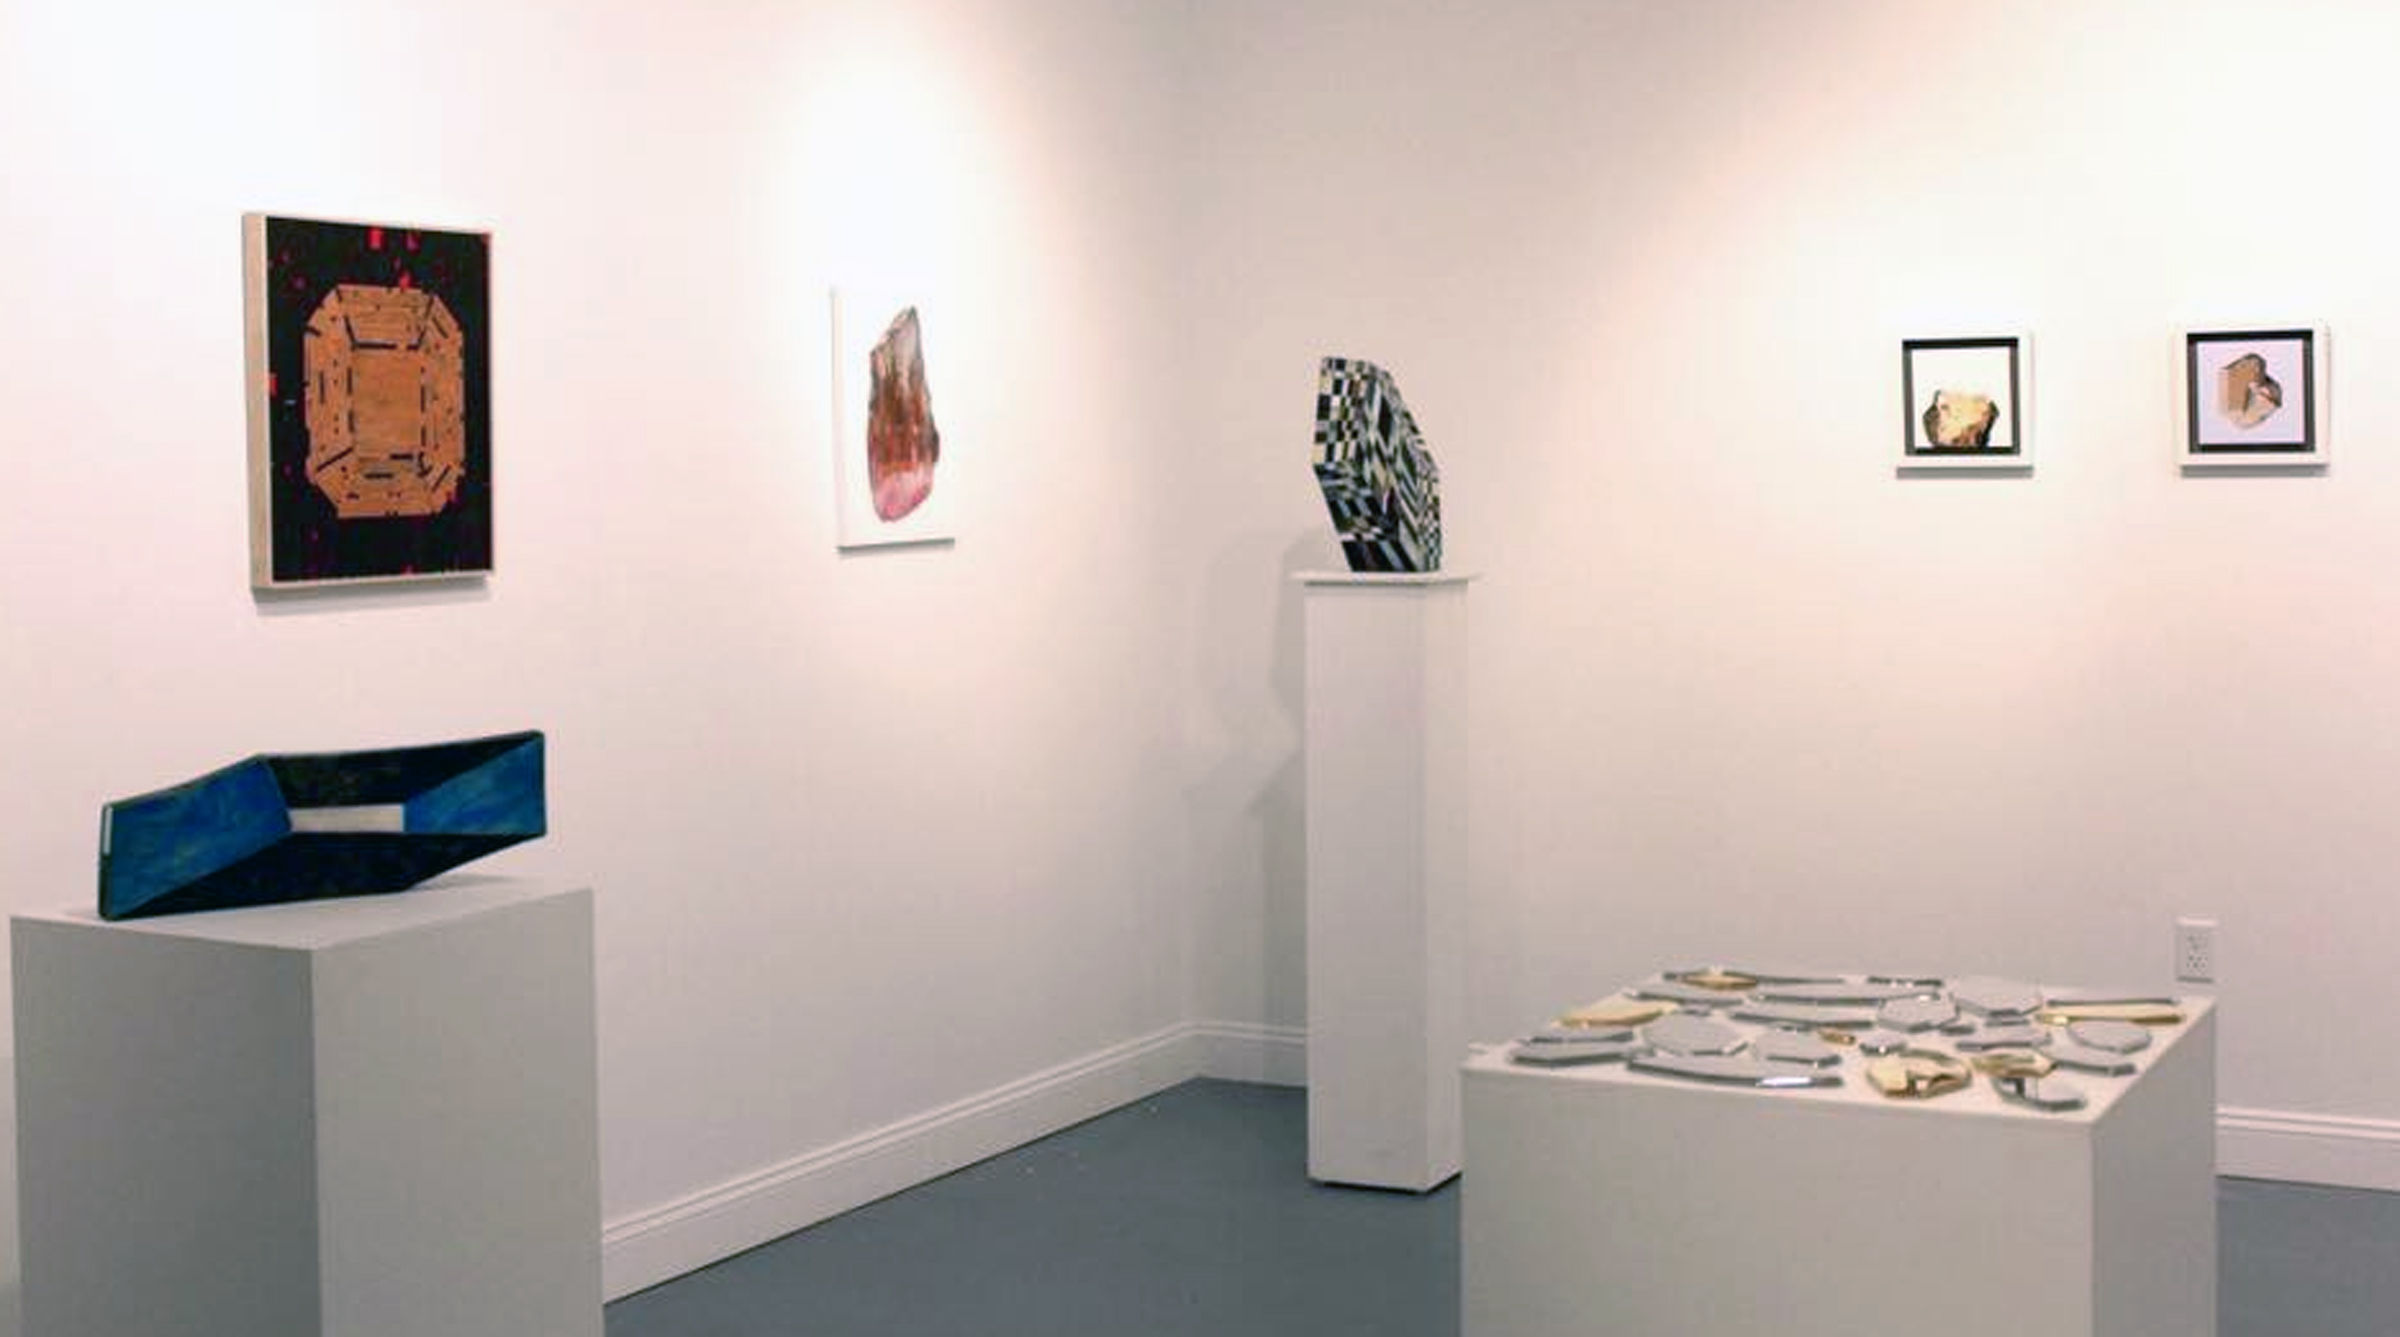 Super Gems    Clark Derbes, Leah Piepgras, Susan Richards, and Will Sears   August 30-October 7, 2016   Stonehill College  , Easton, MA